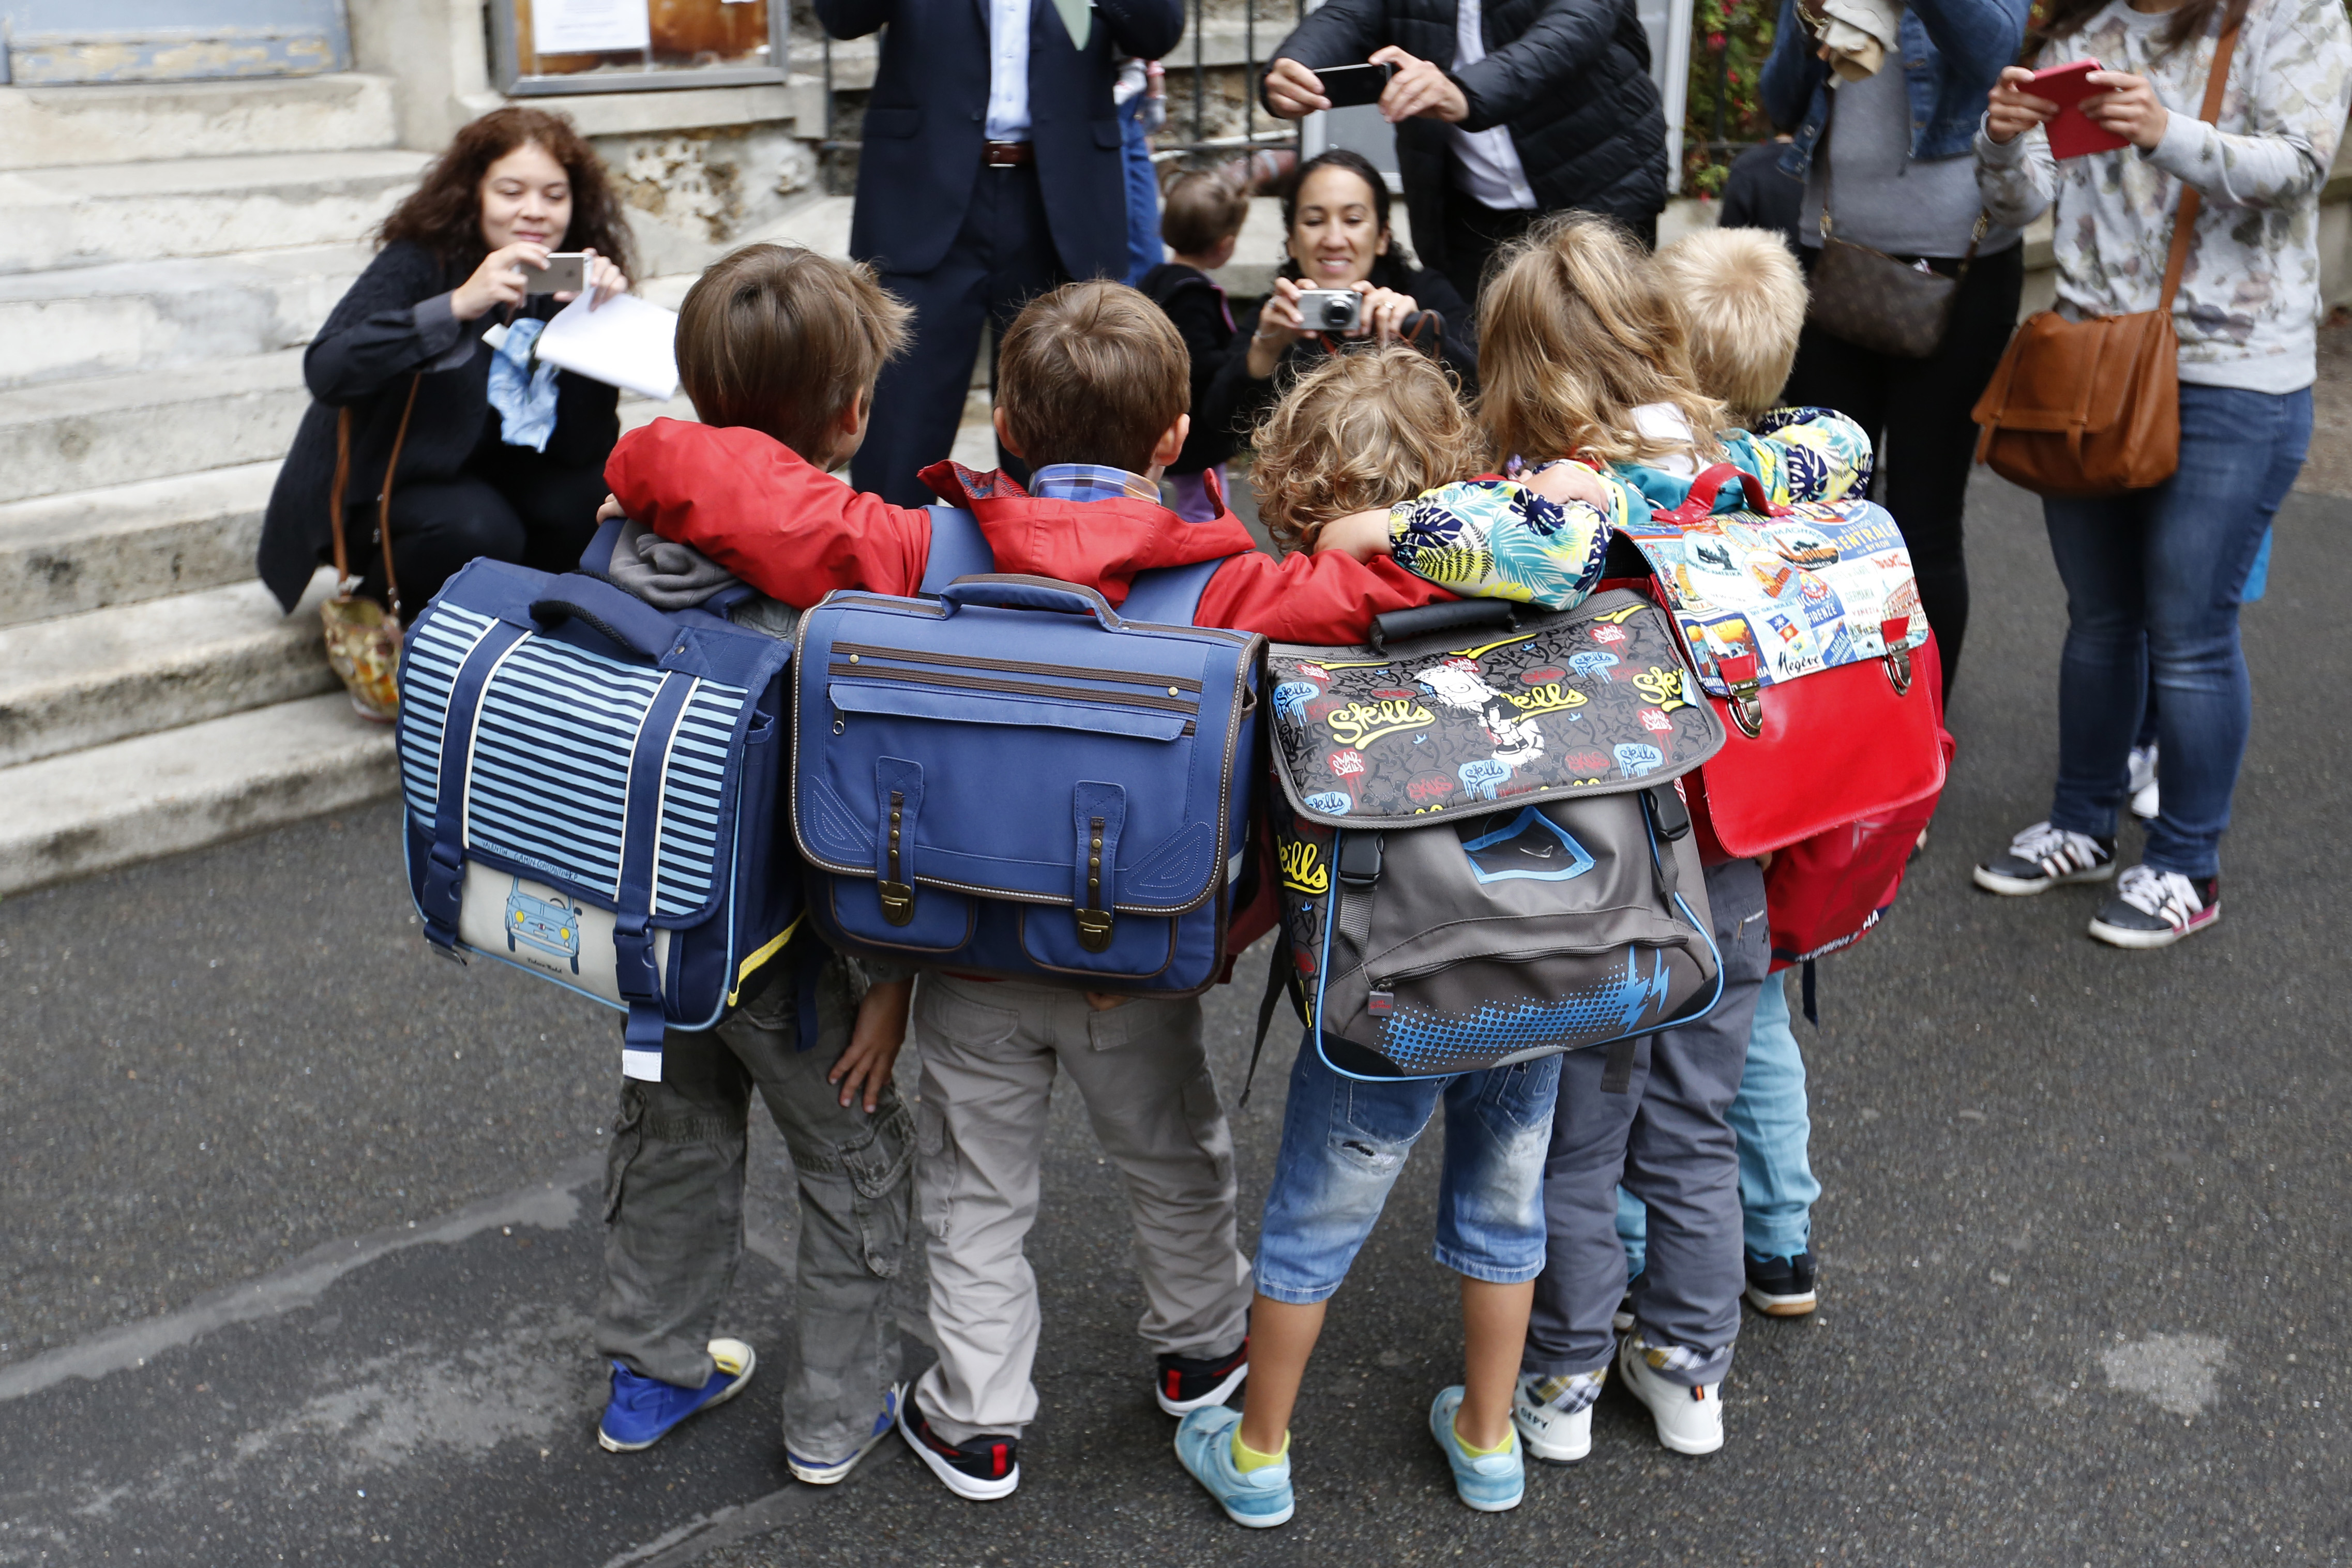 Schoolchildren pose for a group picture before entering the primary school Jules Ferry in Fontenay-sous-Bois near Paris, on the start of the new school year in France September 1, 2015.